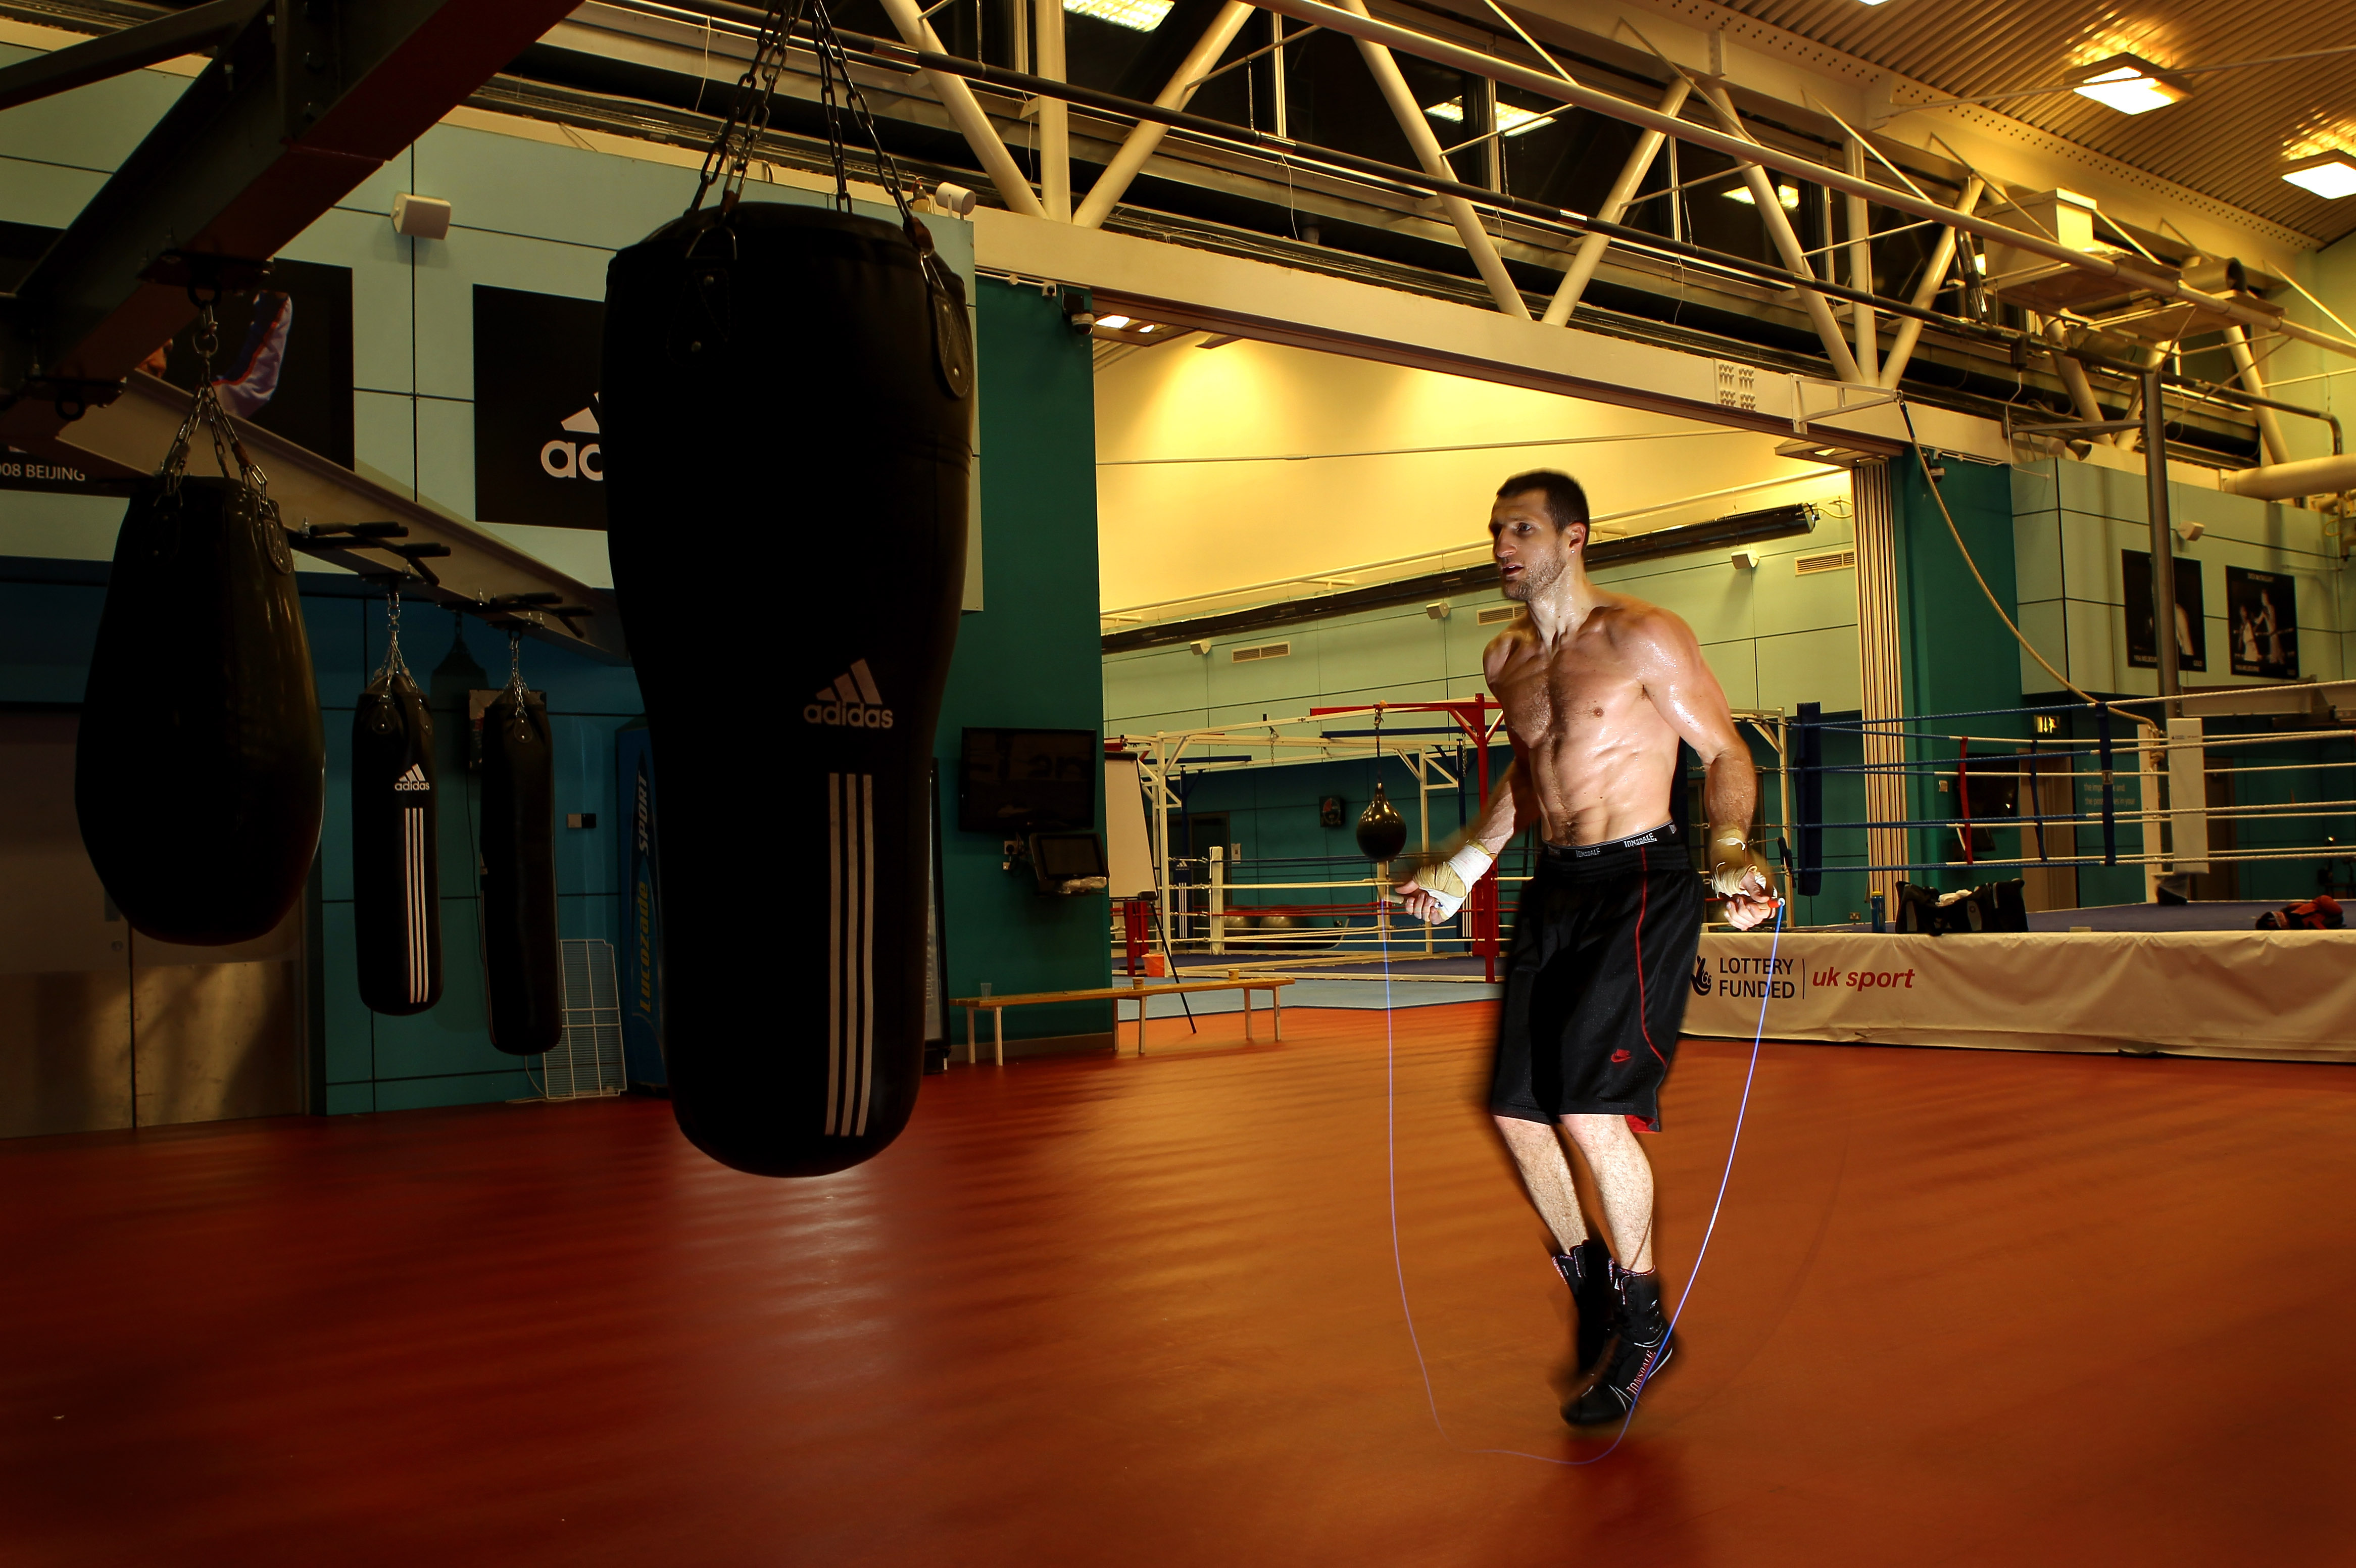 SHEFFIELD, ENGLAND - NOVEMBER 17:  Carl Froch works out with a skipping rope during a media training day ahead of his Super Six fight against Arthur Abraham at the English Institute of Sport on November 17, 2010 in Sheffield, England.  (Photo by Alex Live